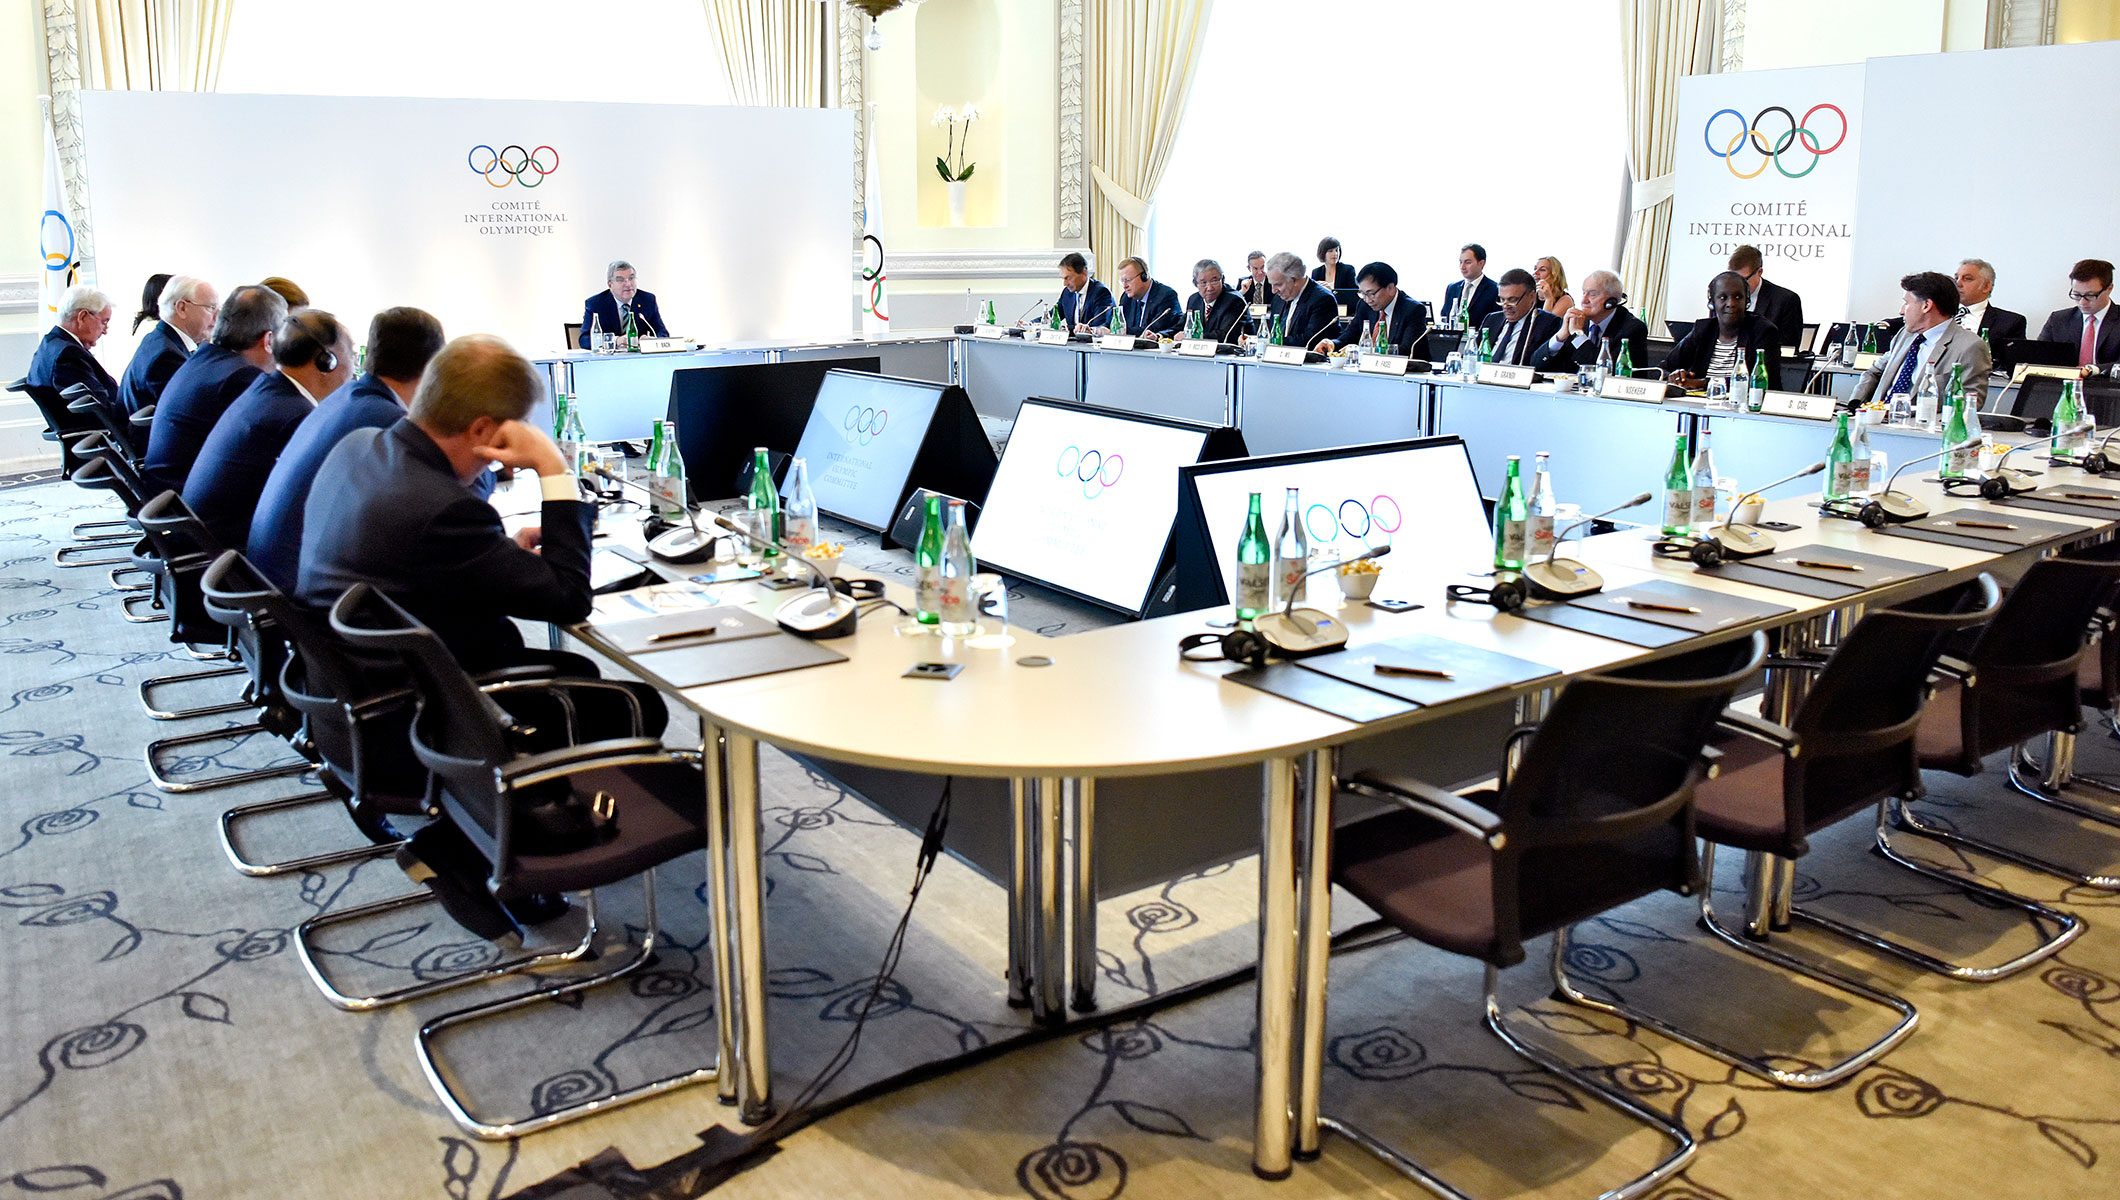 Olympic Summit, Lausanne